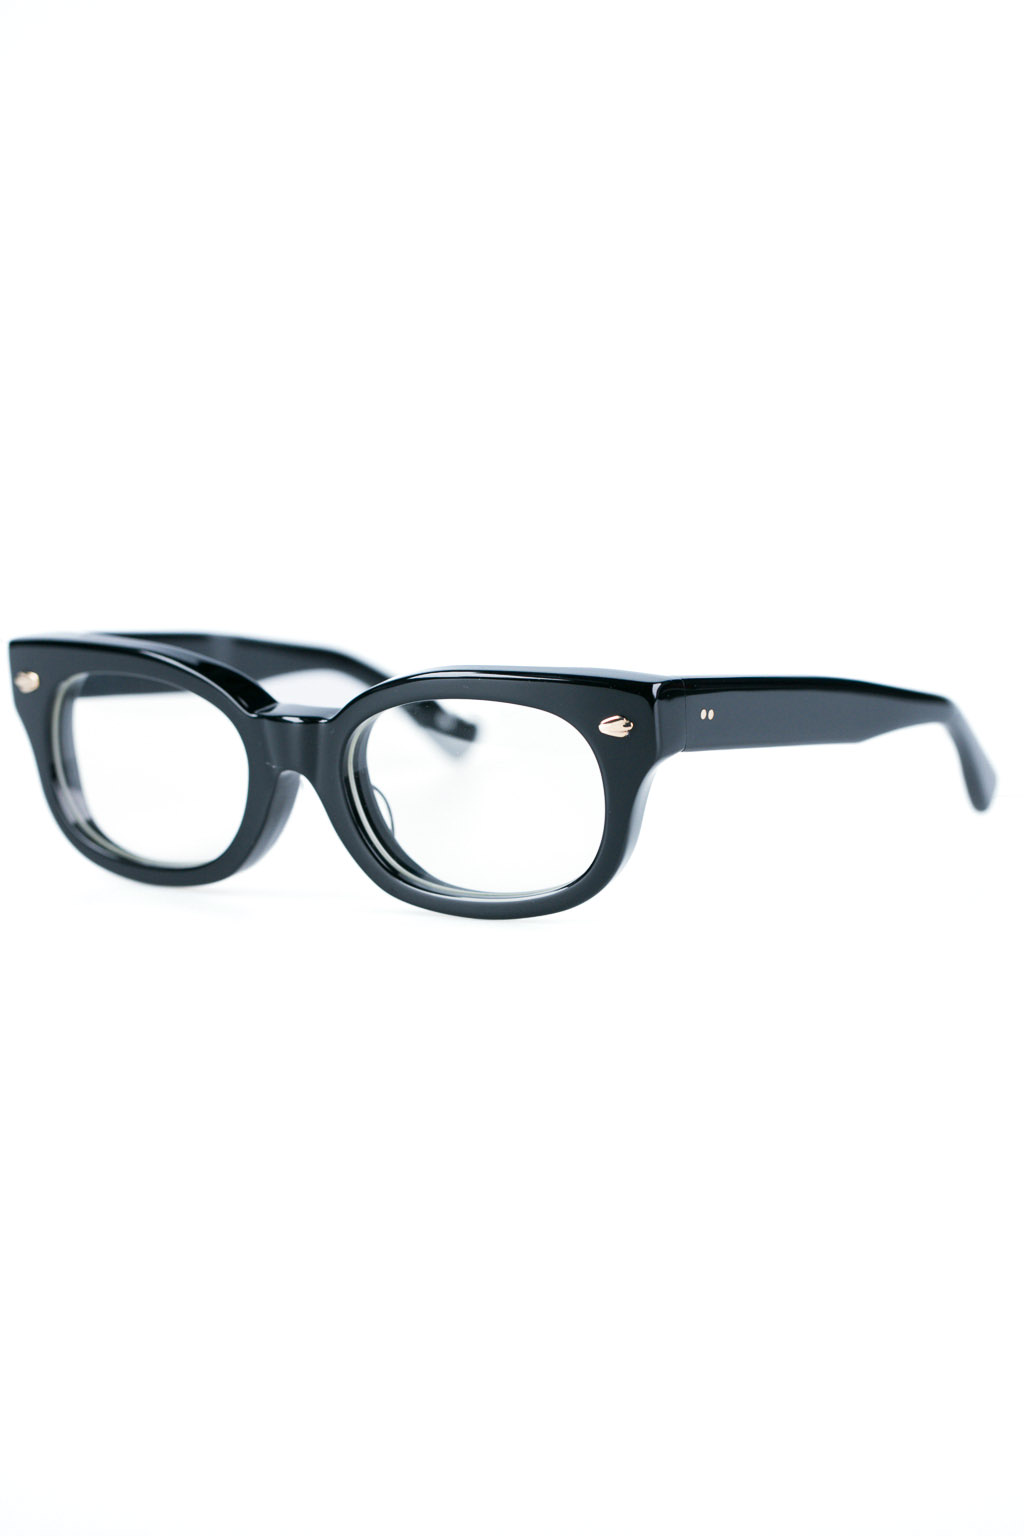 Effector fuzz-full up - Black